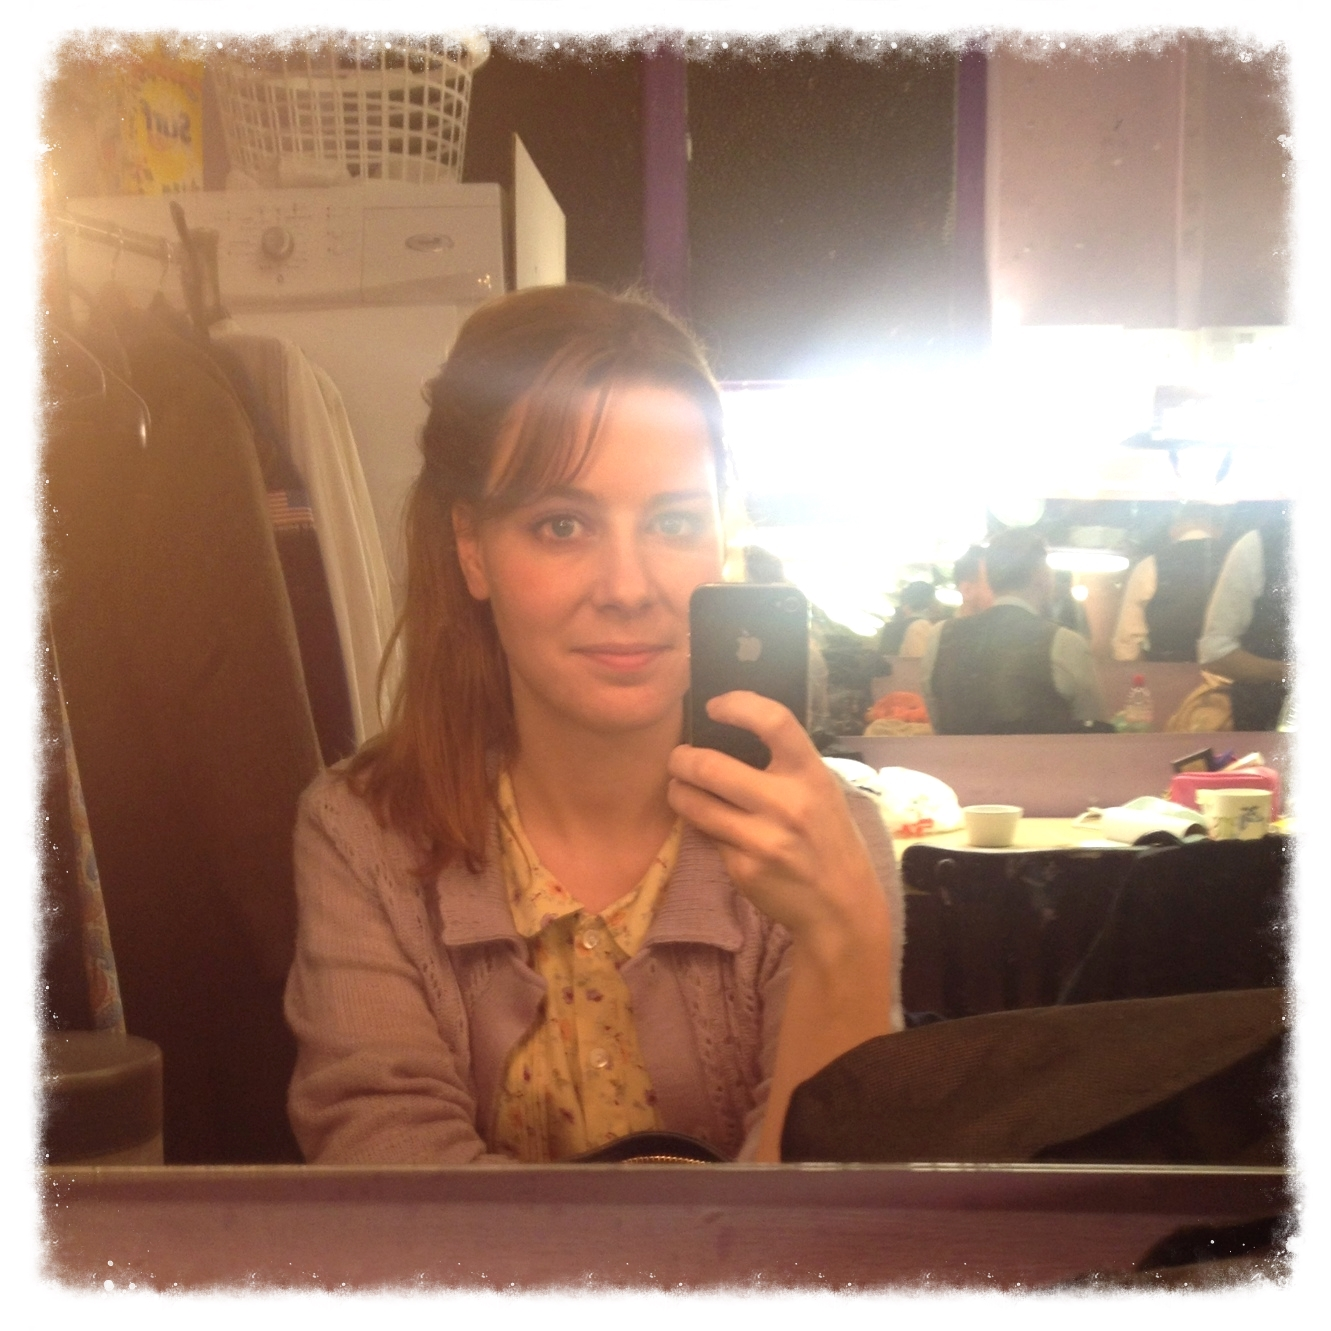 Backstage, moonlighting as an actress.